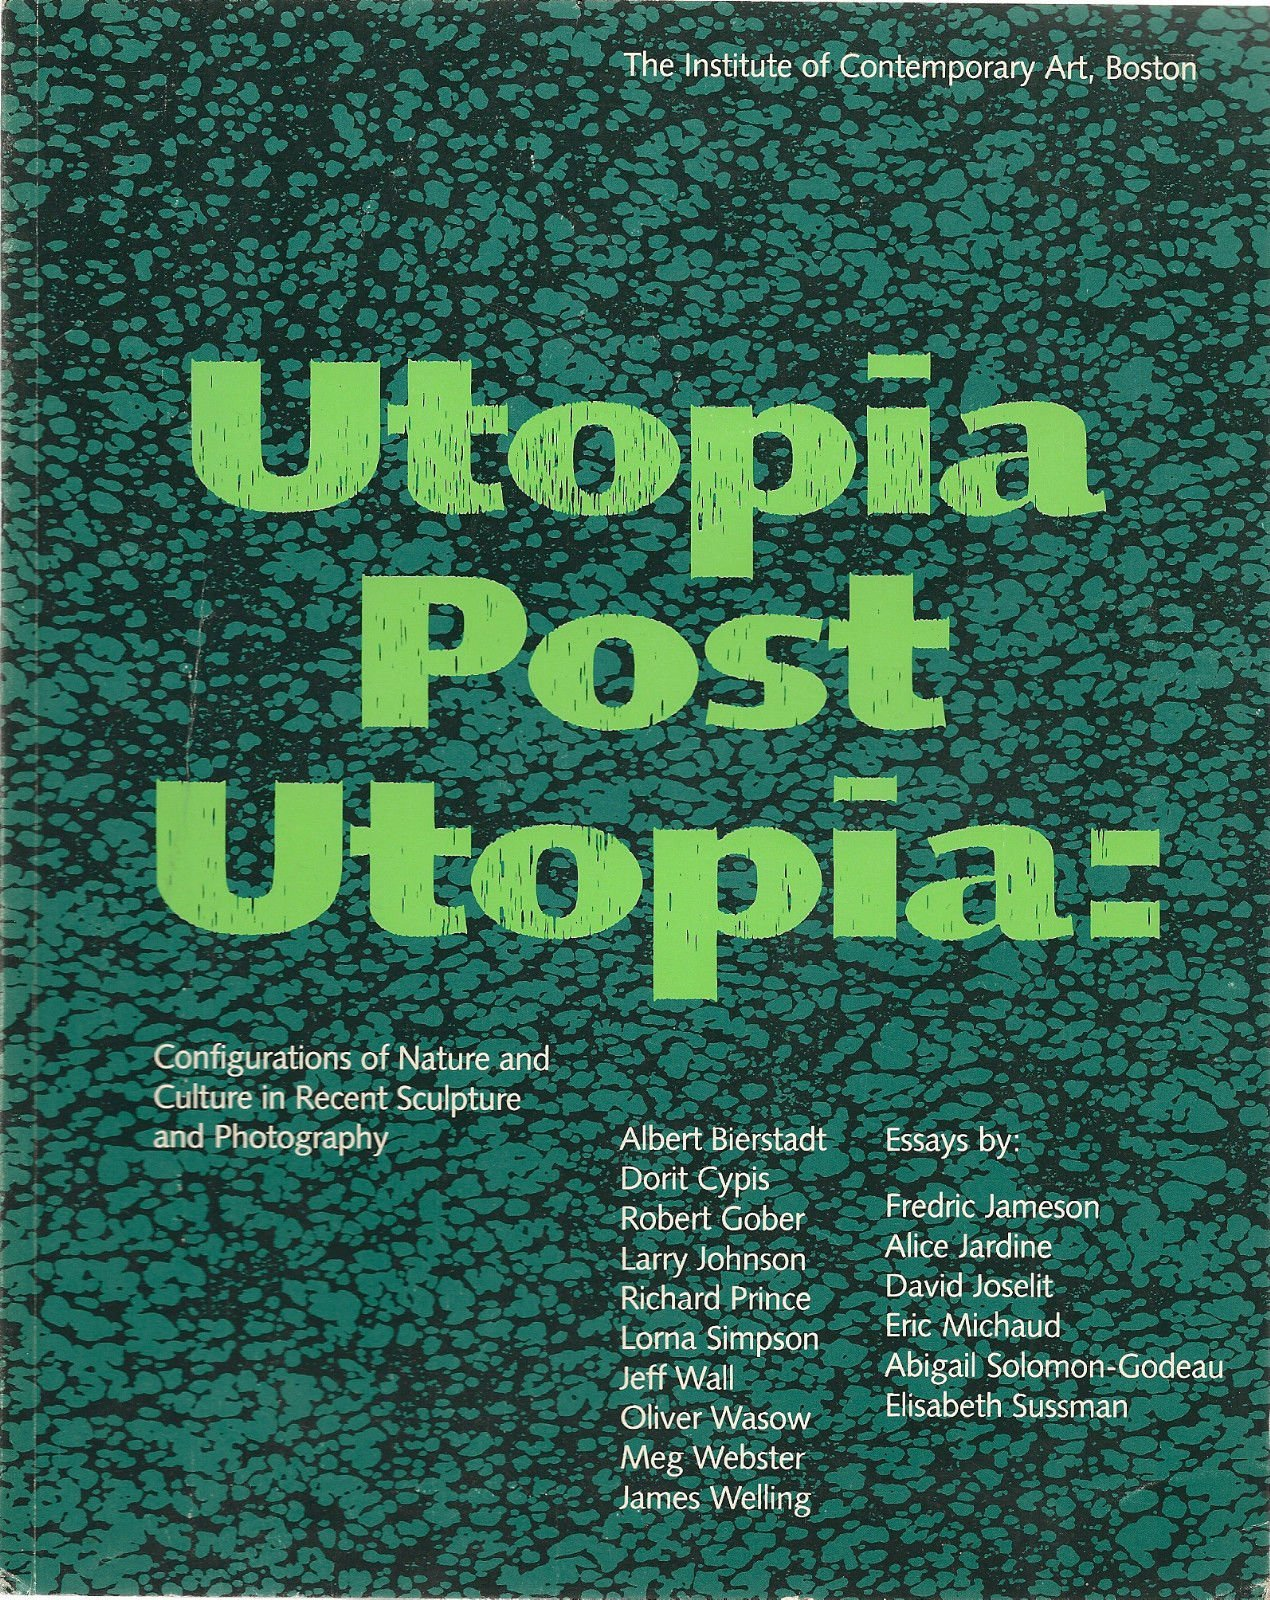 utopia post utopia configurations of nature and culture in recent utopia post utopia configurations of nature and culture in recent sculpture and photography alice jardine abigail solomon godeau eric michaud